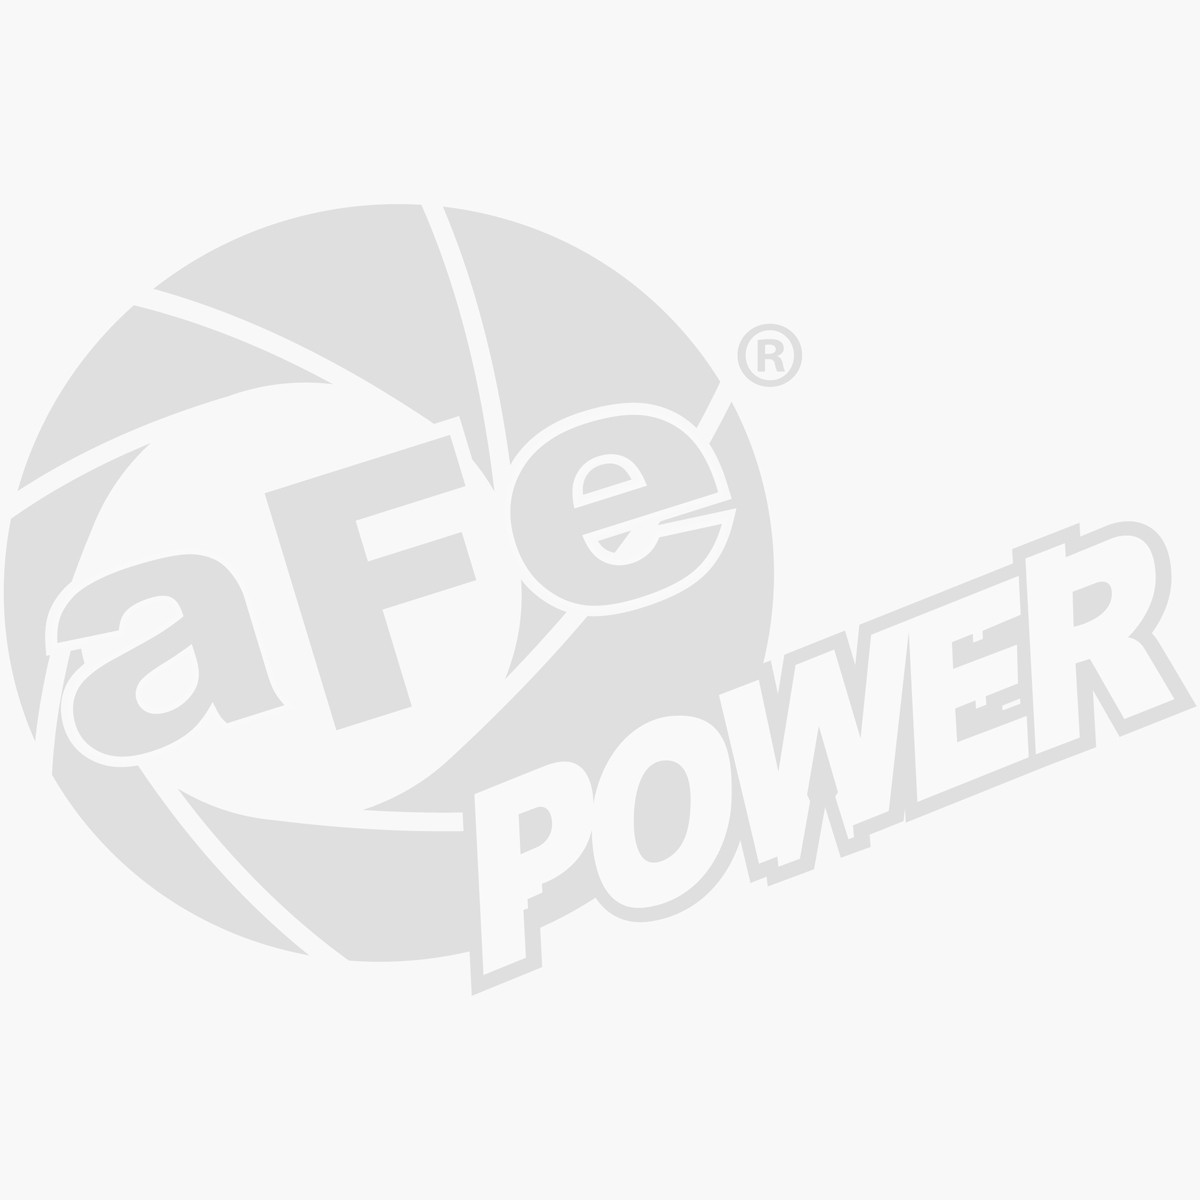 aFe POWER 18-11602 Round Racing Pro 5R Air Filter